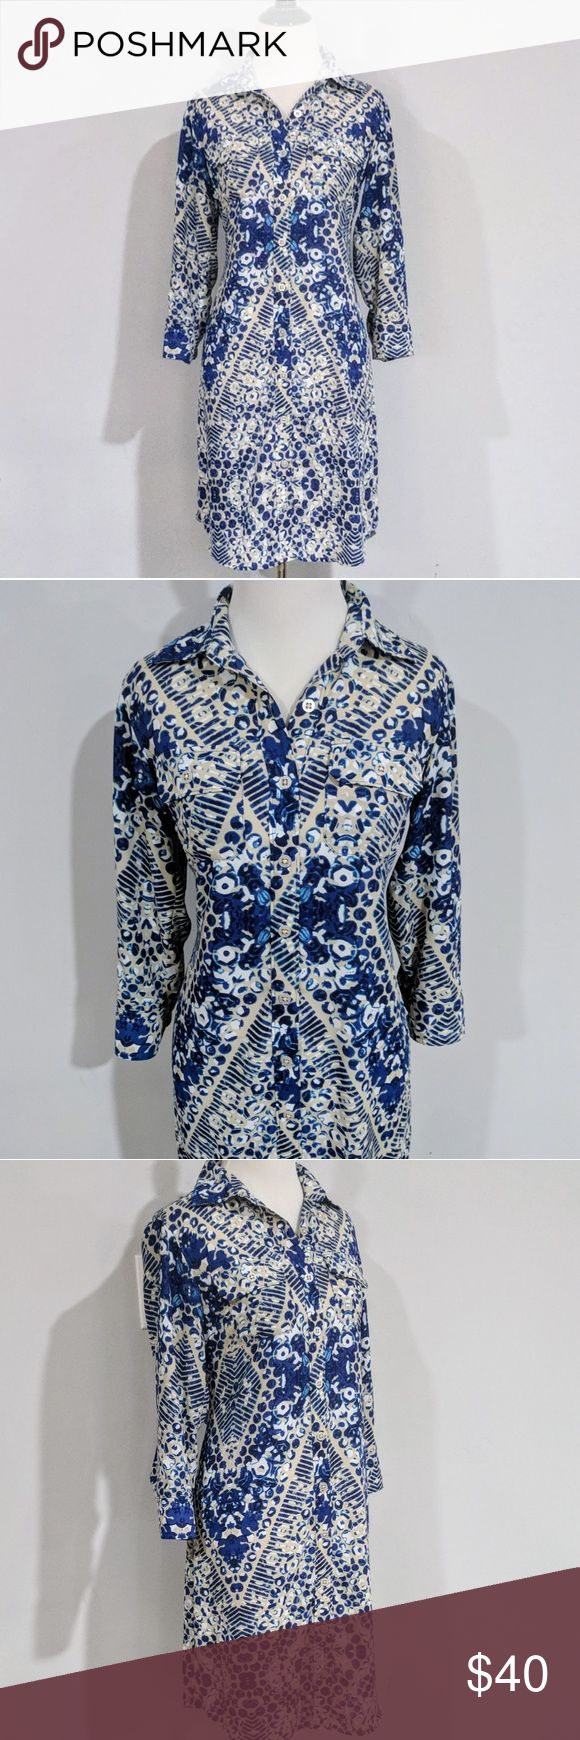 CAbit Button Down Shirt Dress Gorgeous button down shirt dress by CAbi in excellent condition. Perfect for dressing up or down. Super comfortable, very flattering! Great for spring! CAbi Dresses